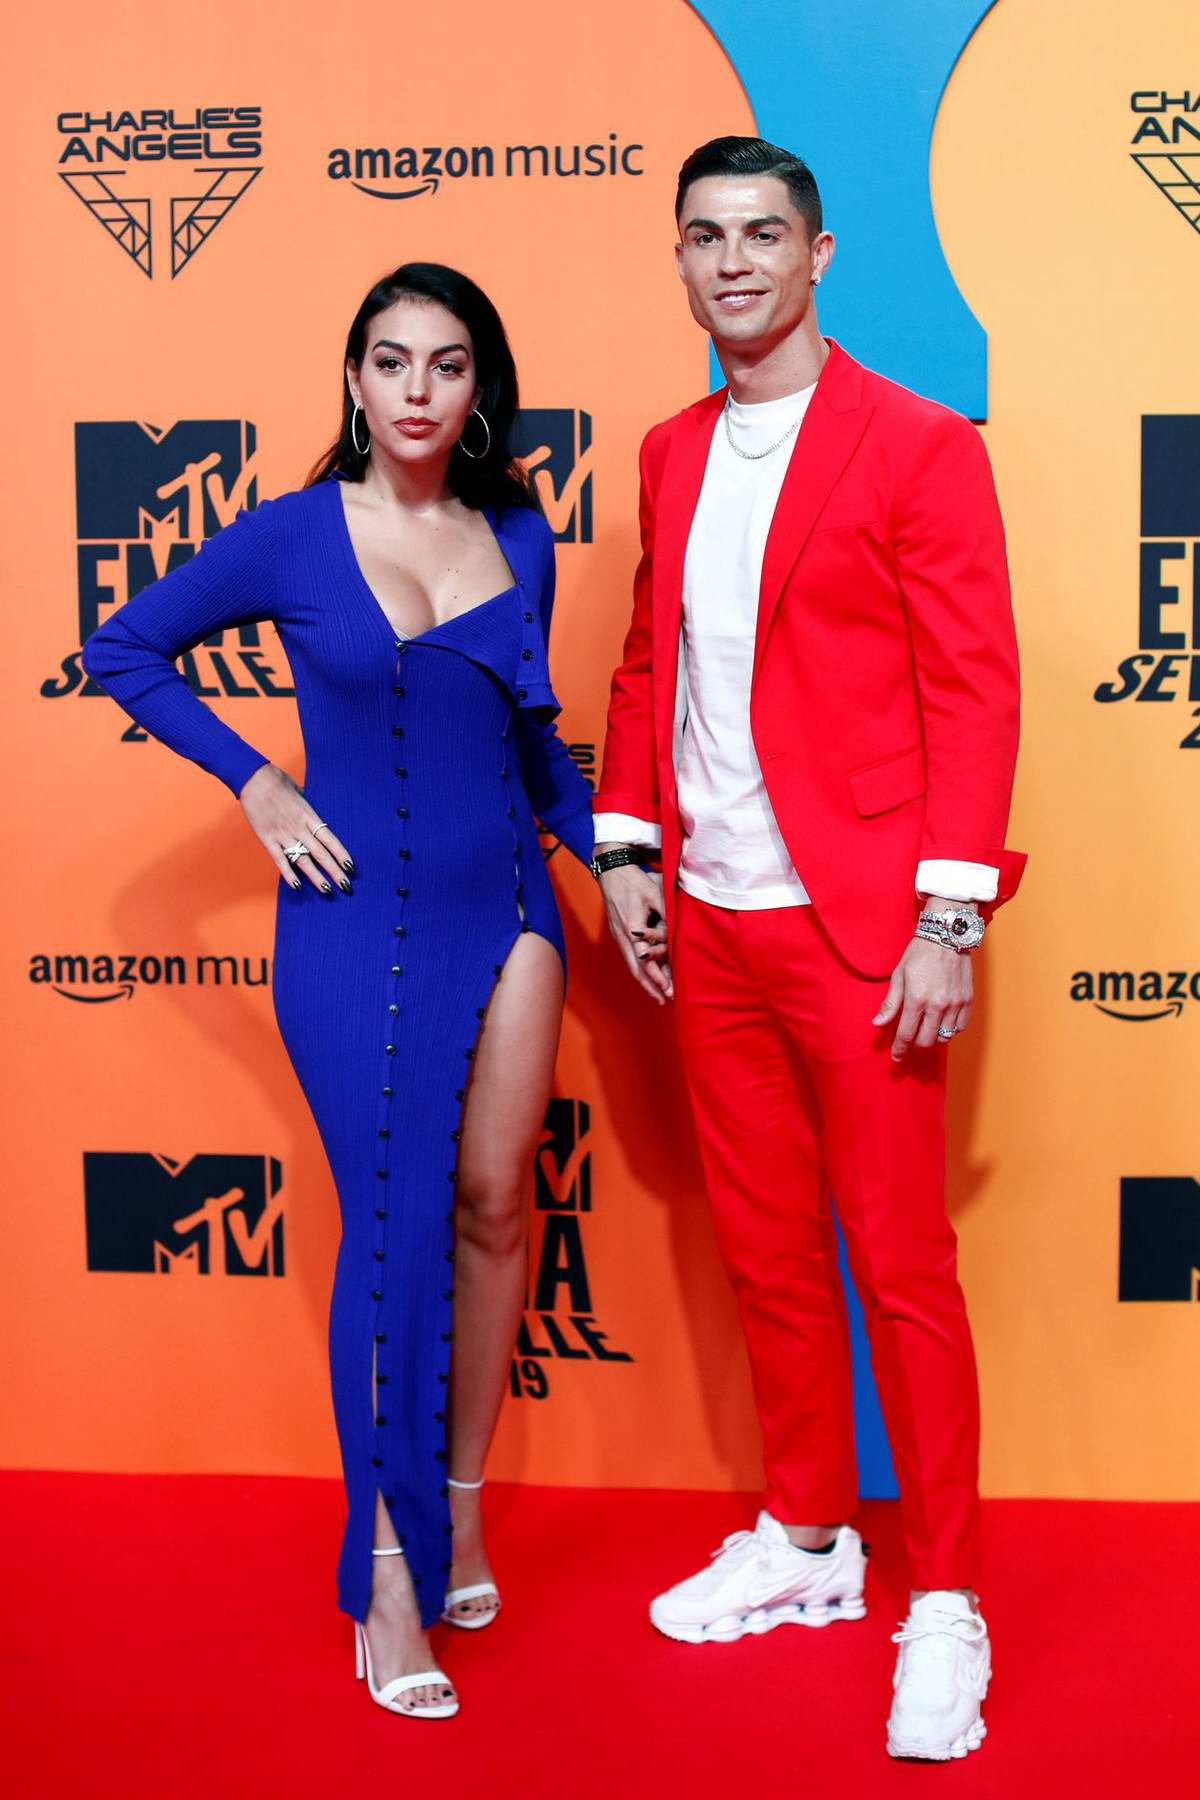 Georgina Rodriguez and Cristiano Ronaldo attend the MTV Europe Music Awards 2019 at FIBES Conference and Exhibition Centre in Seville, Spain